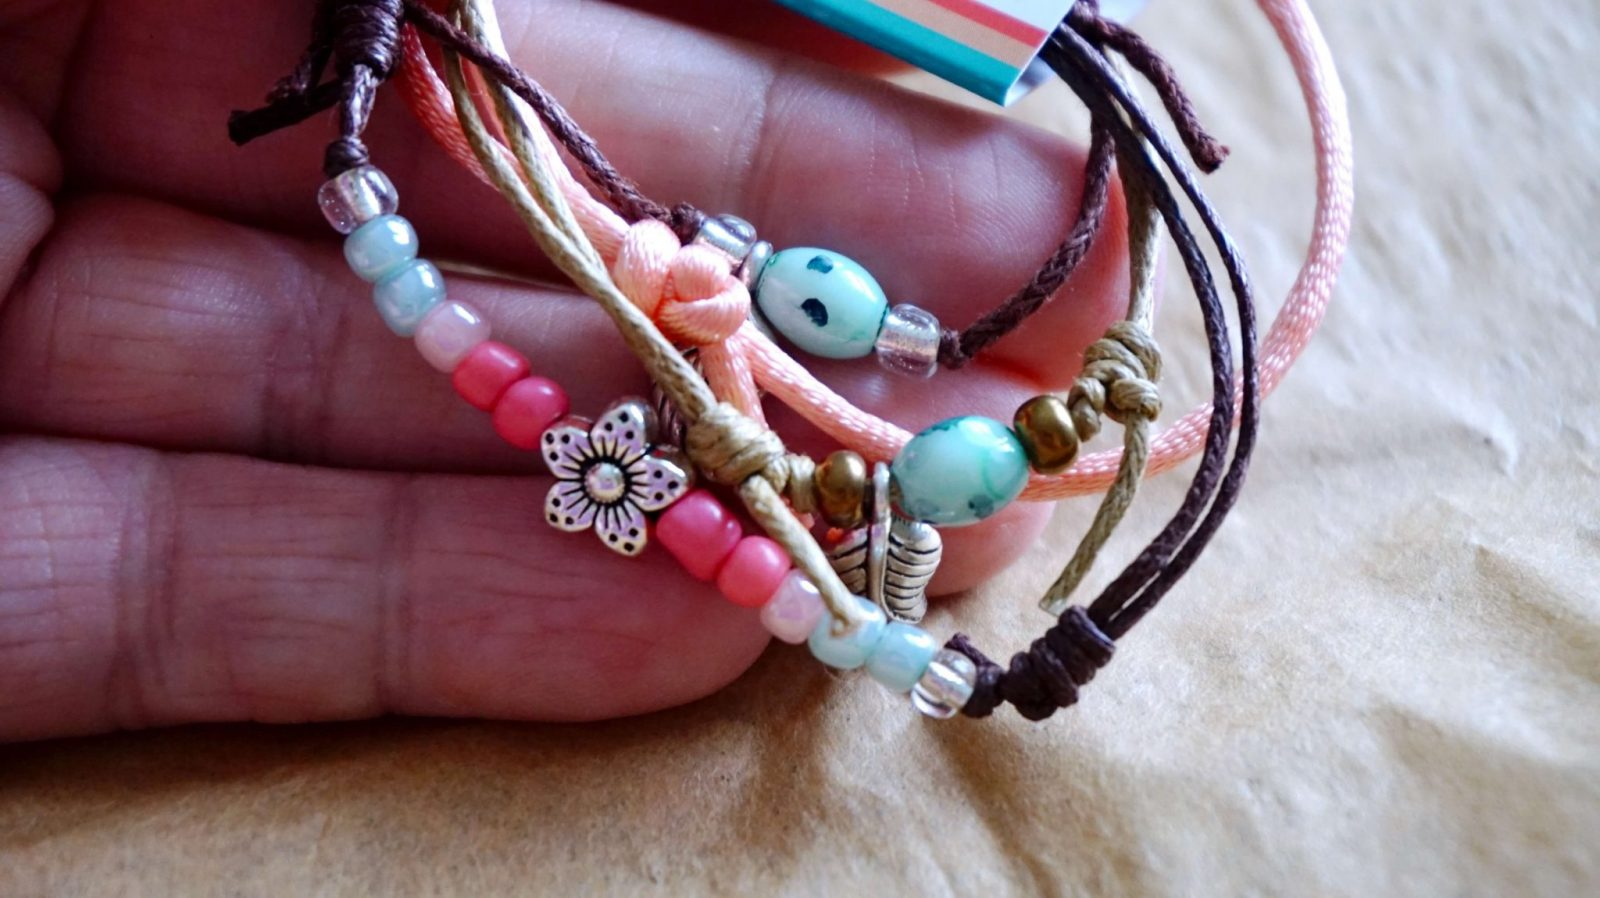 Up Close Photo of Bracelet Set from O Yeah